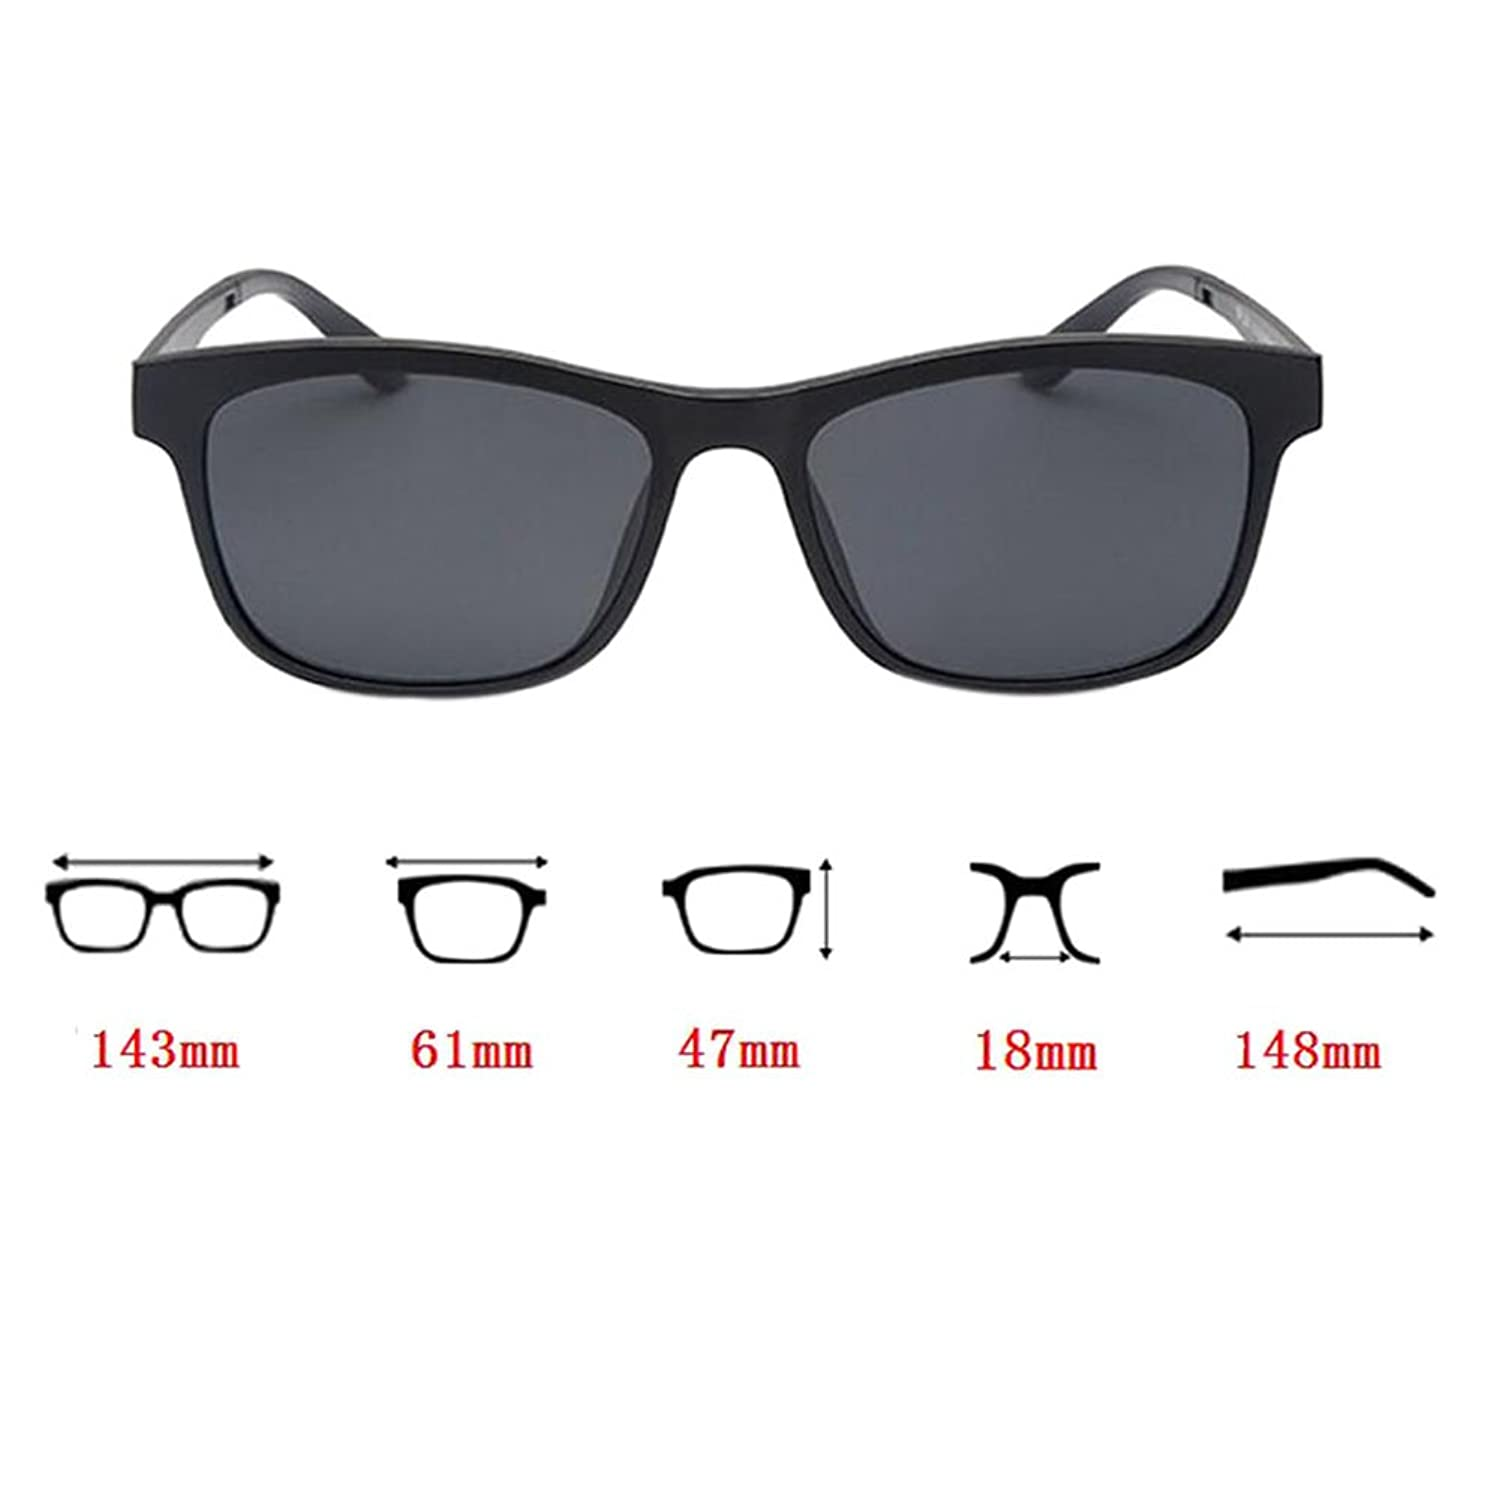 Haodasi EyeBrille Full Frame With Magnet Clip Polarisiert Sonnenbrille Dual-use Brille loXT9oK